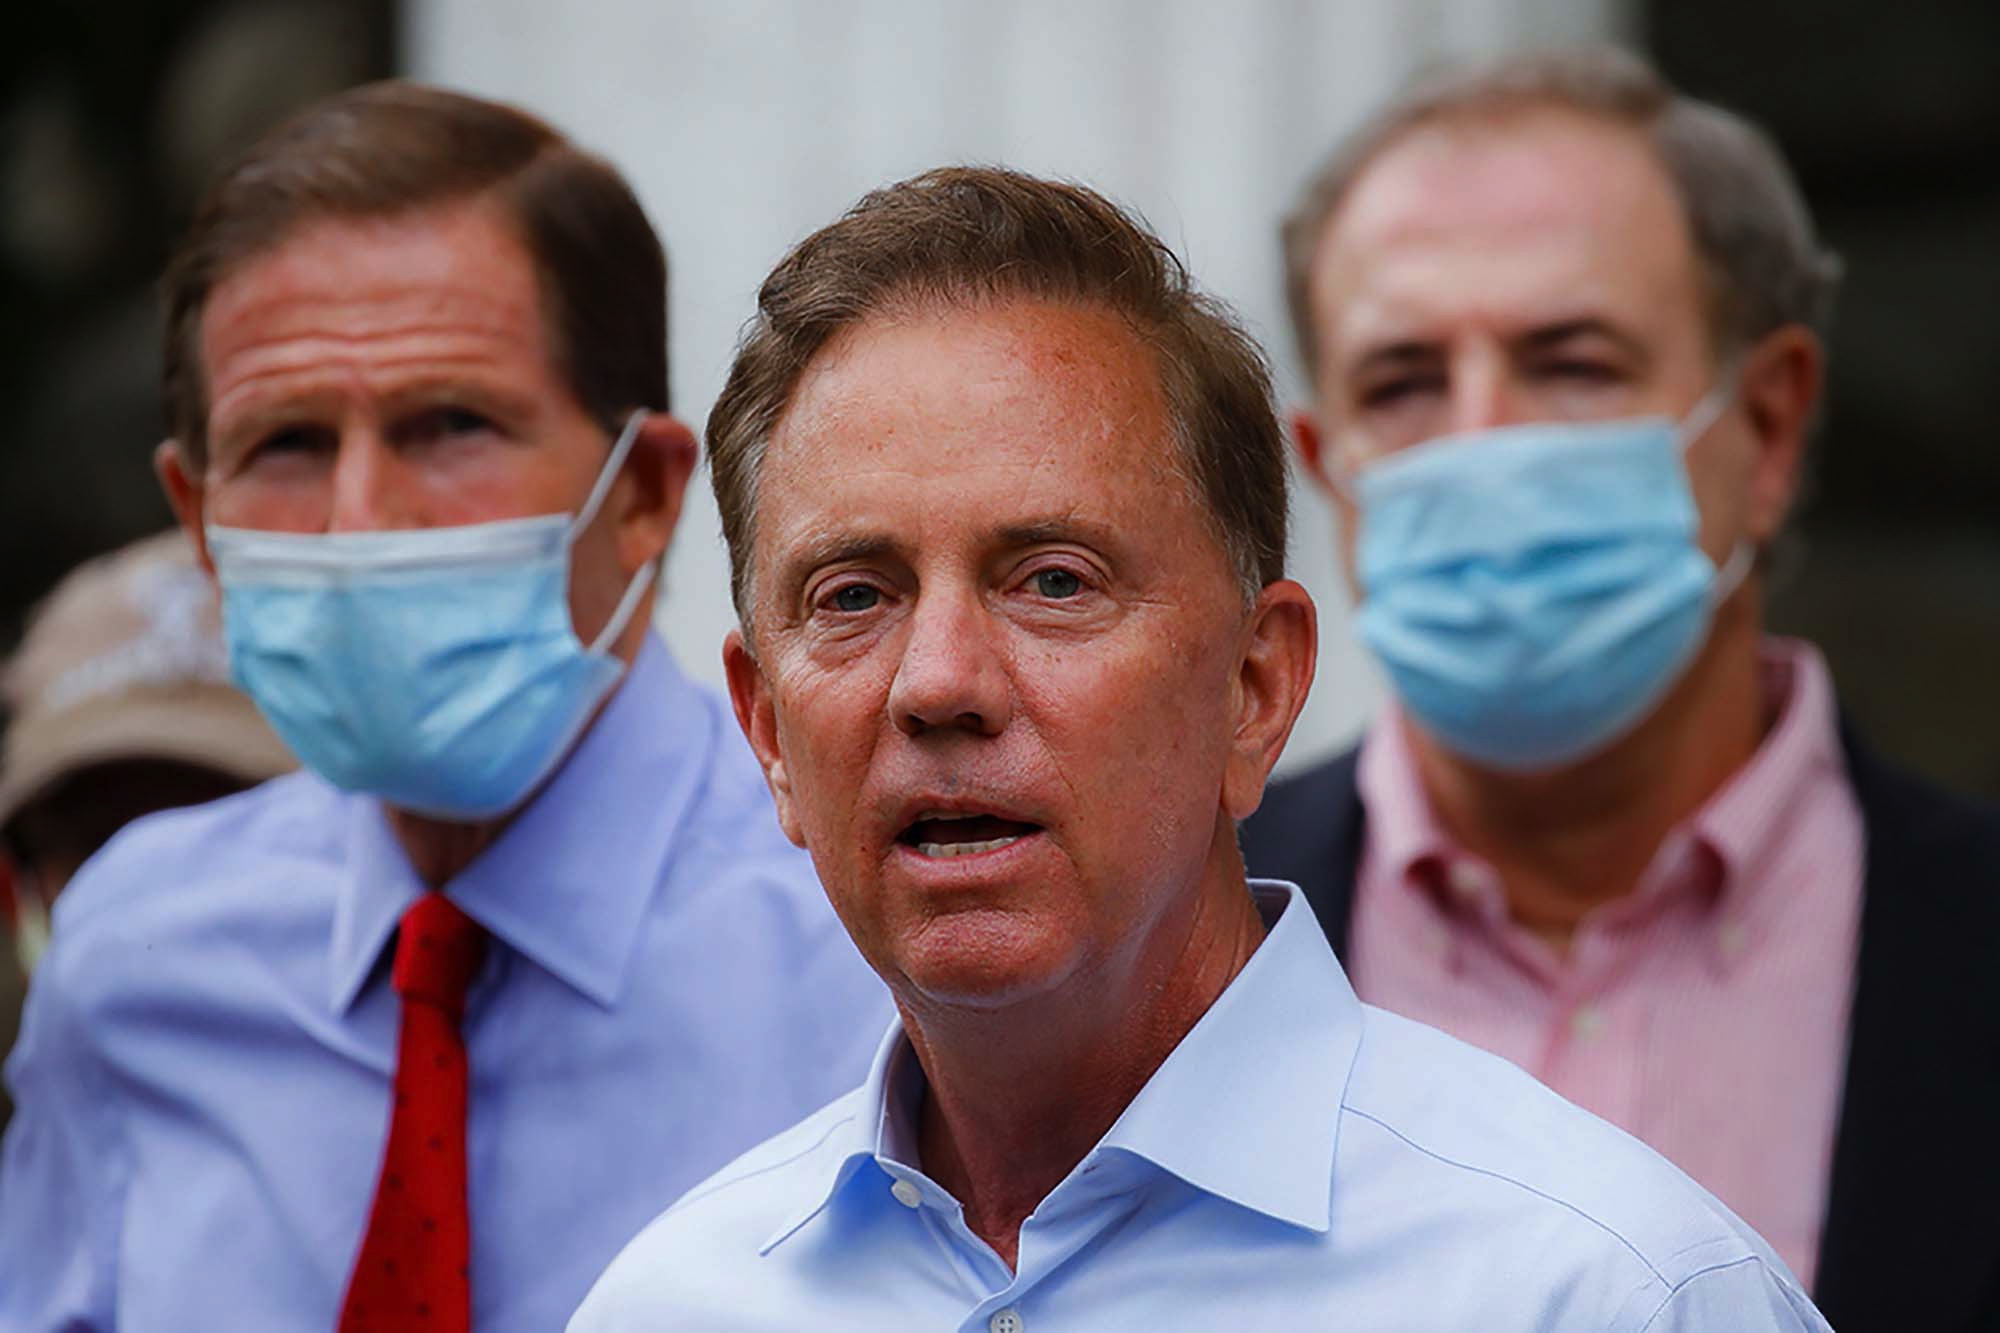 Connecticut Gov. Ned Lamont isolates after staffer gets COVID-19